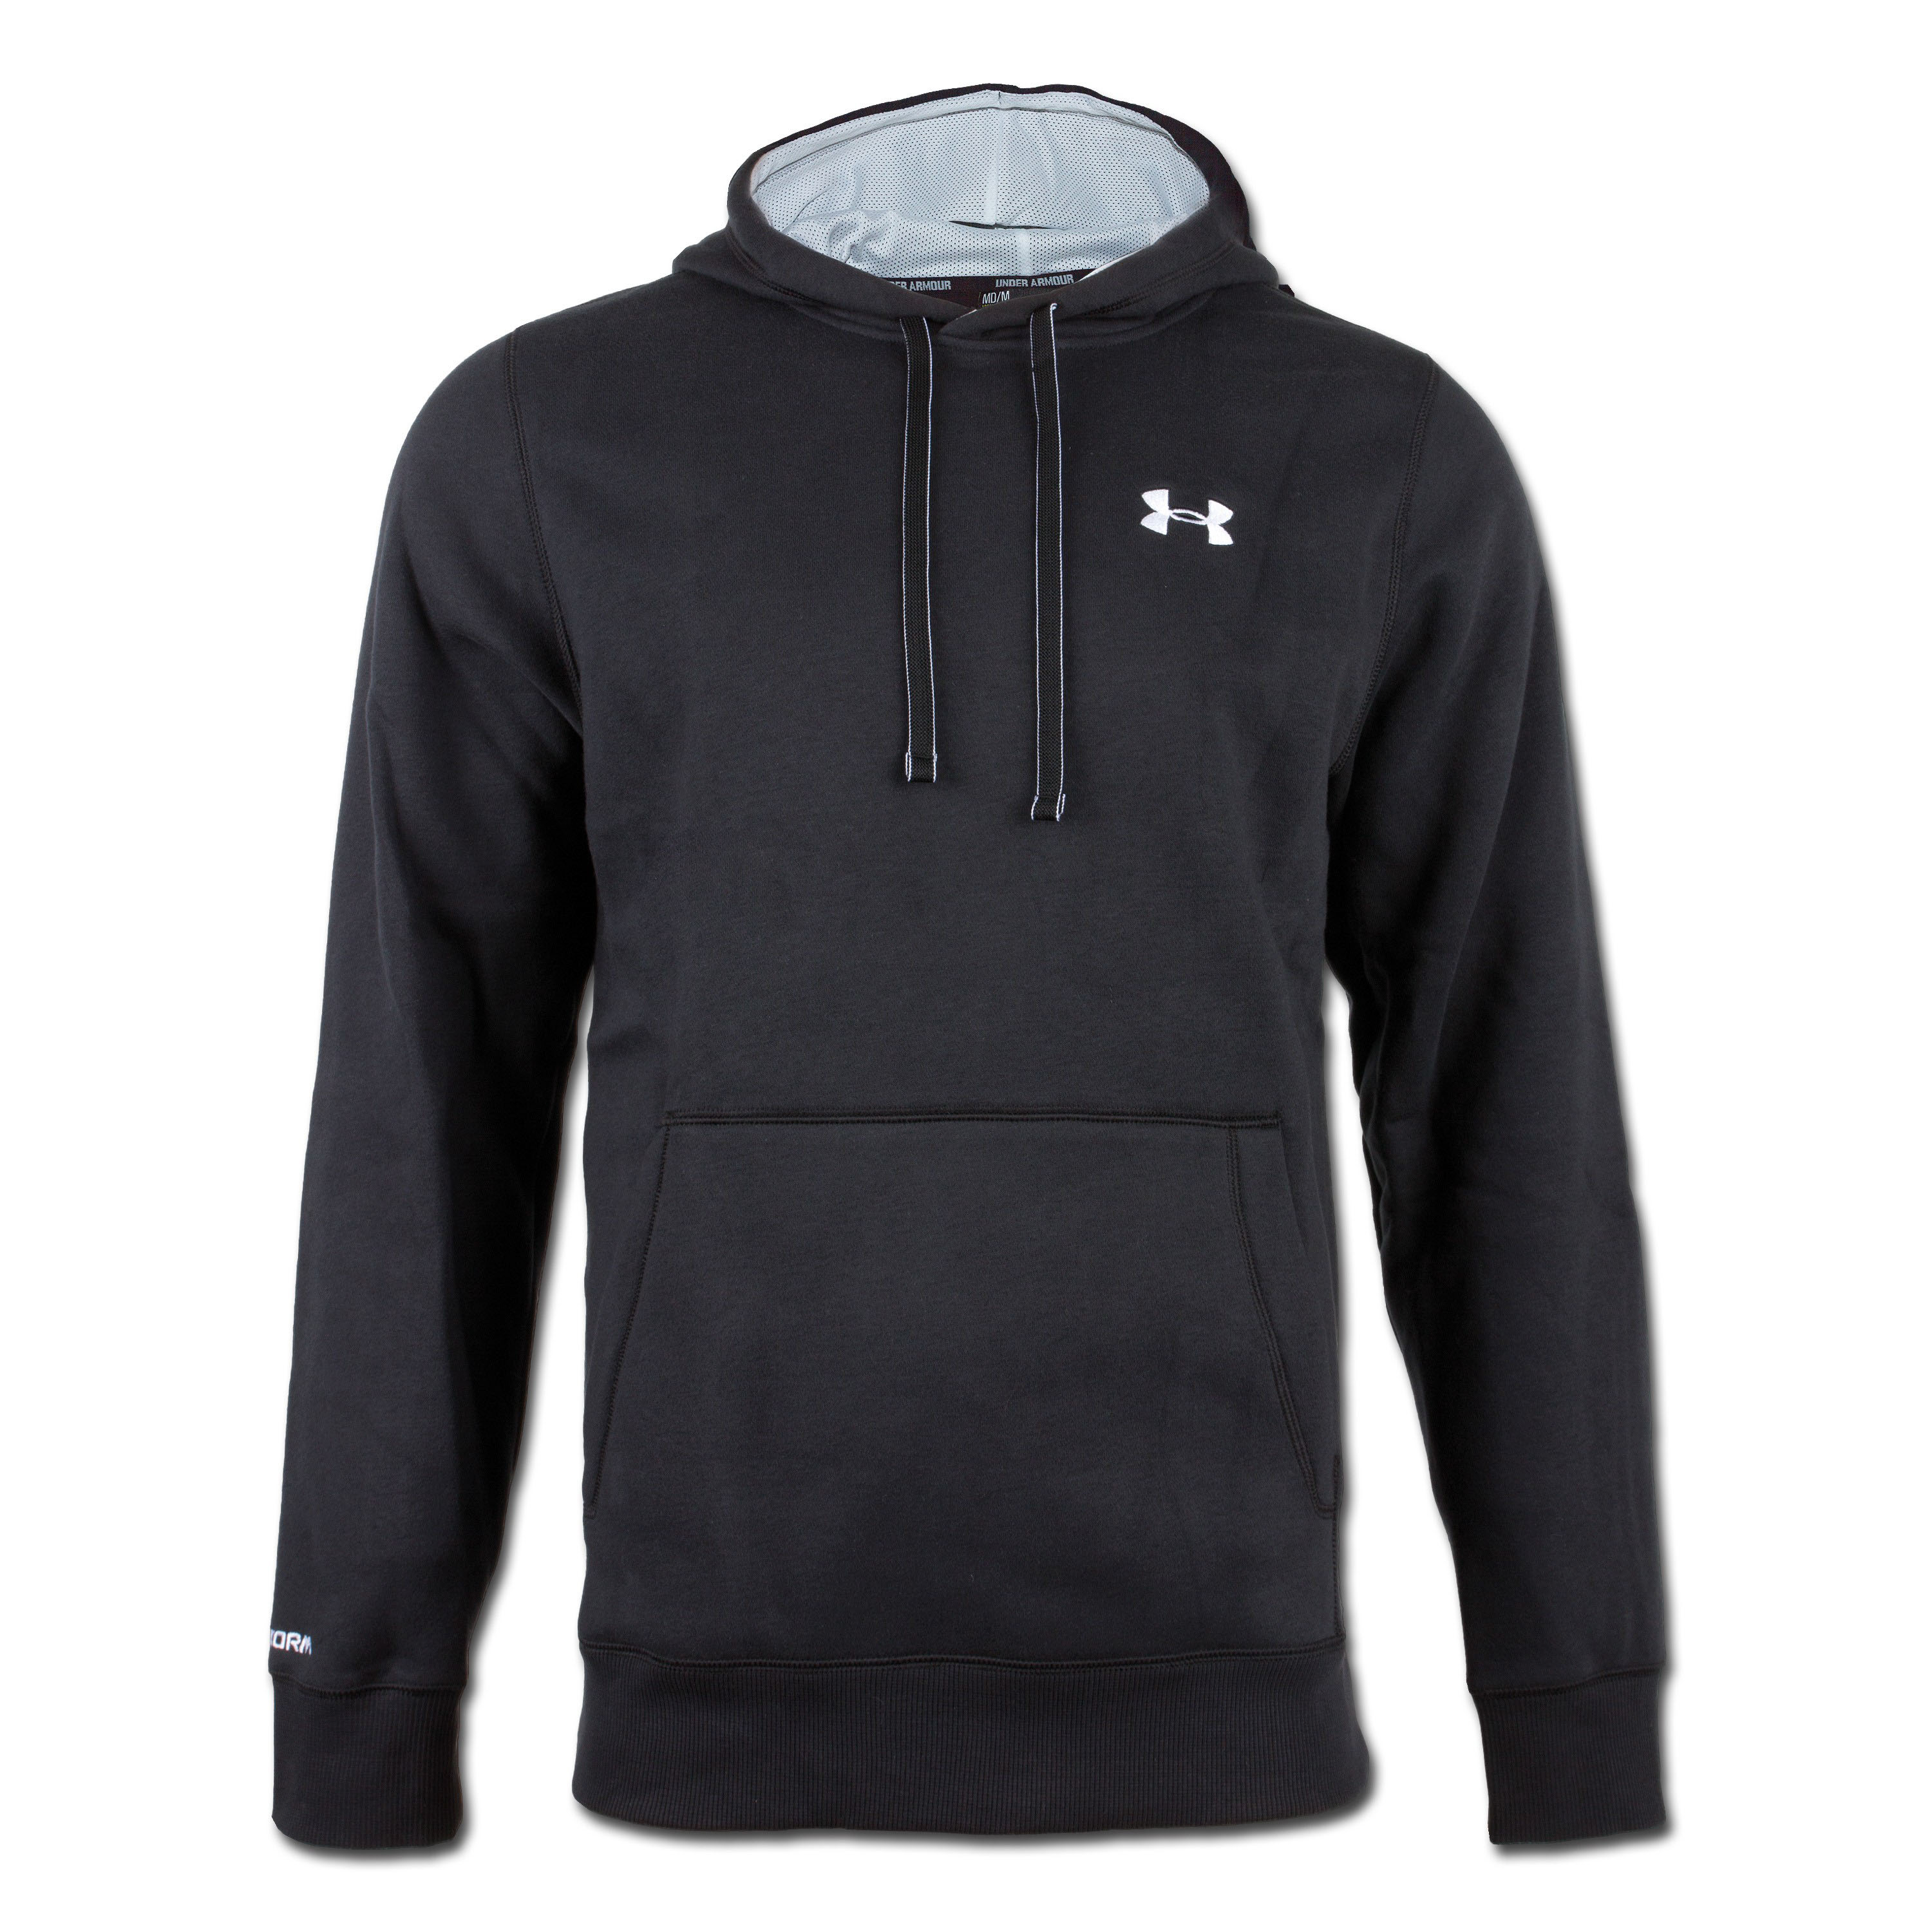 Under Armour Charged Cotton Rival Hoody black